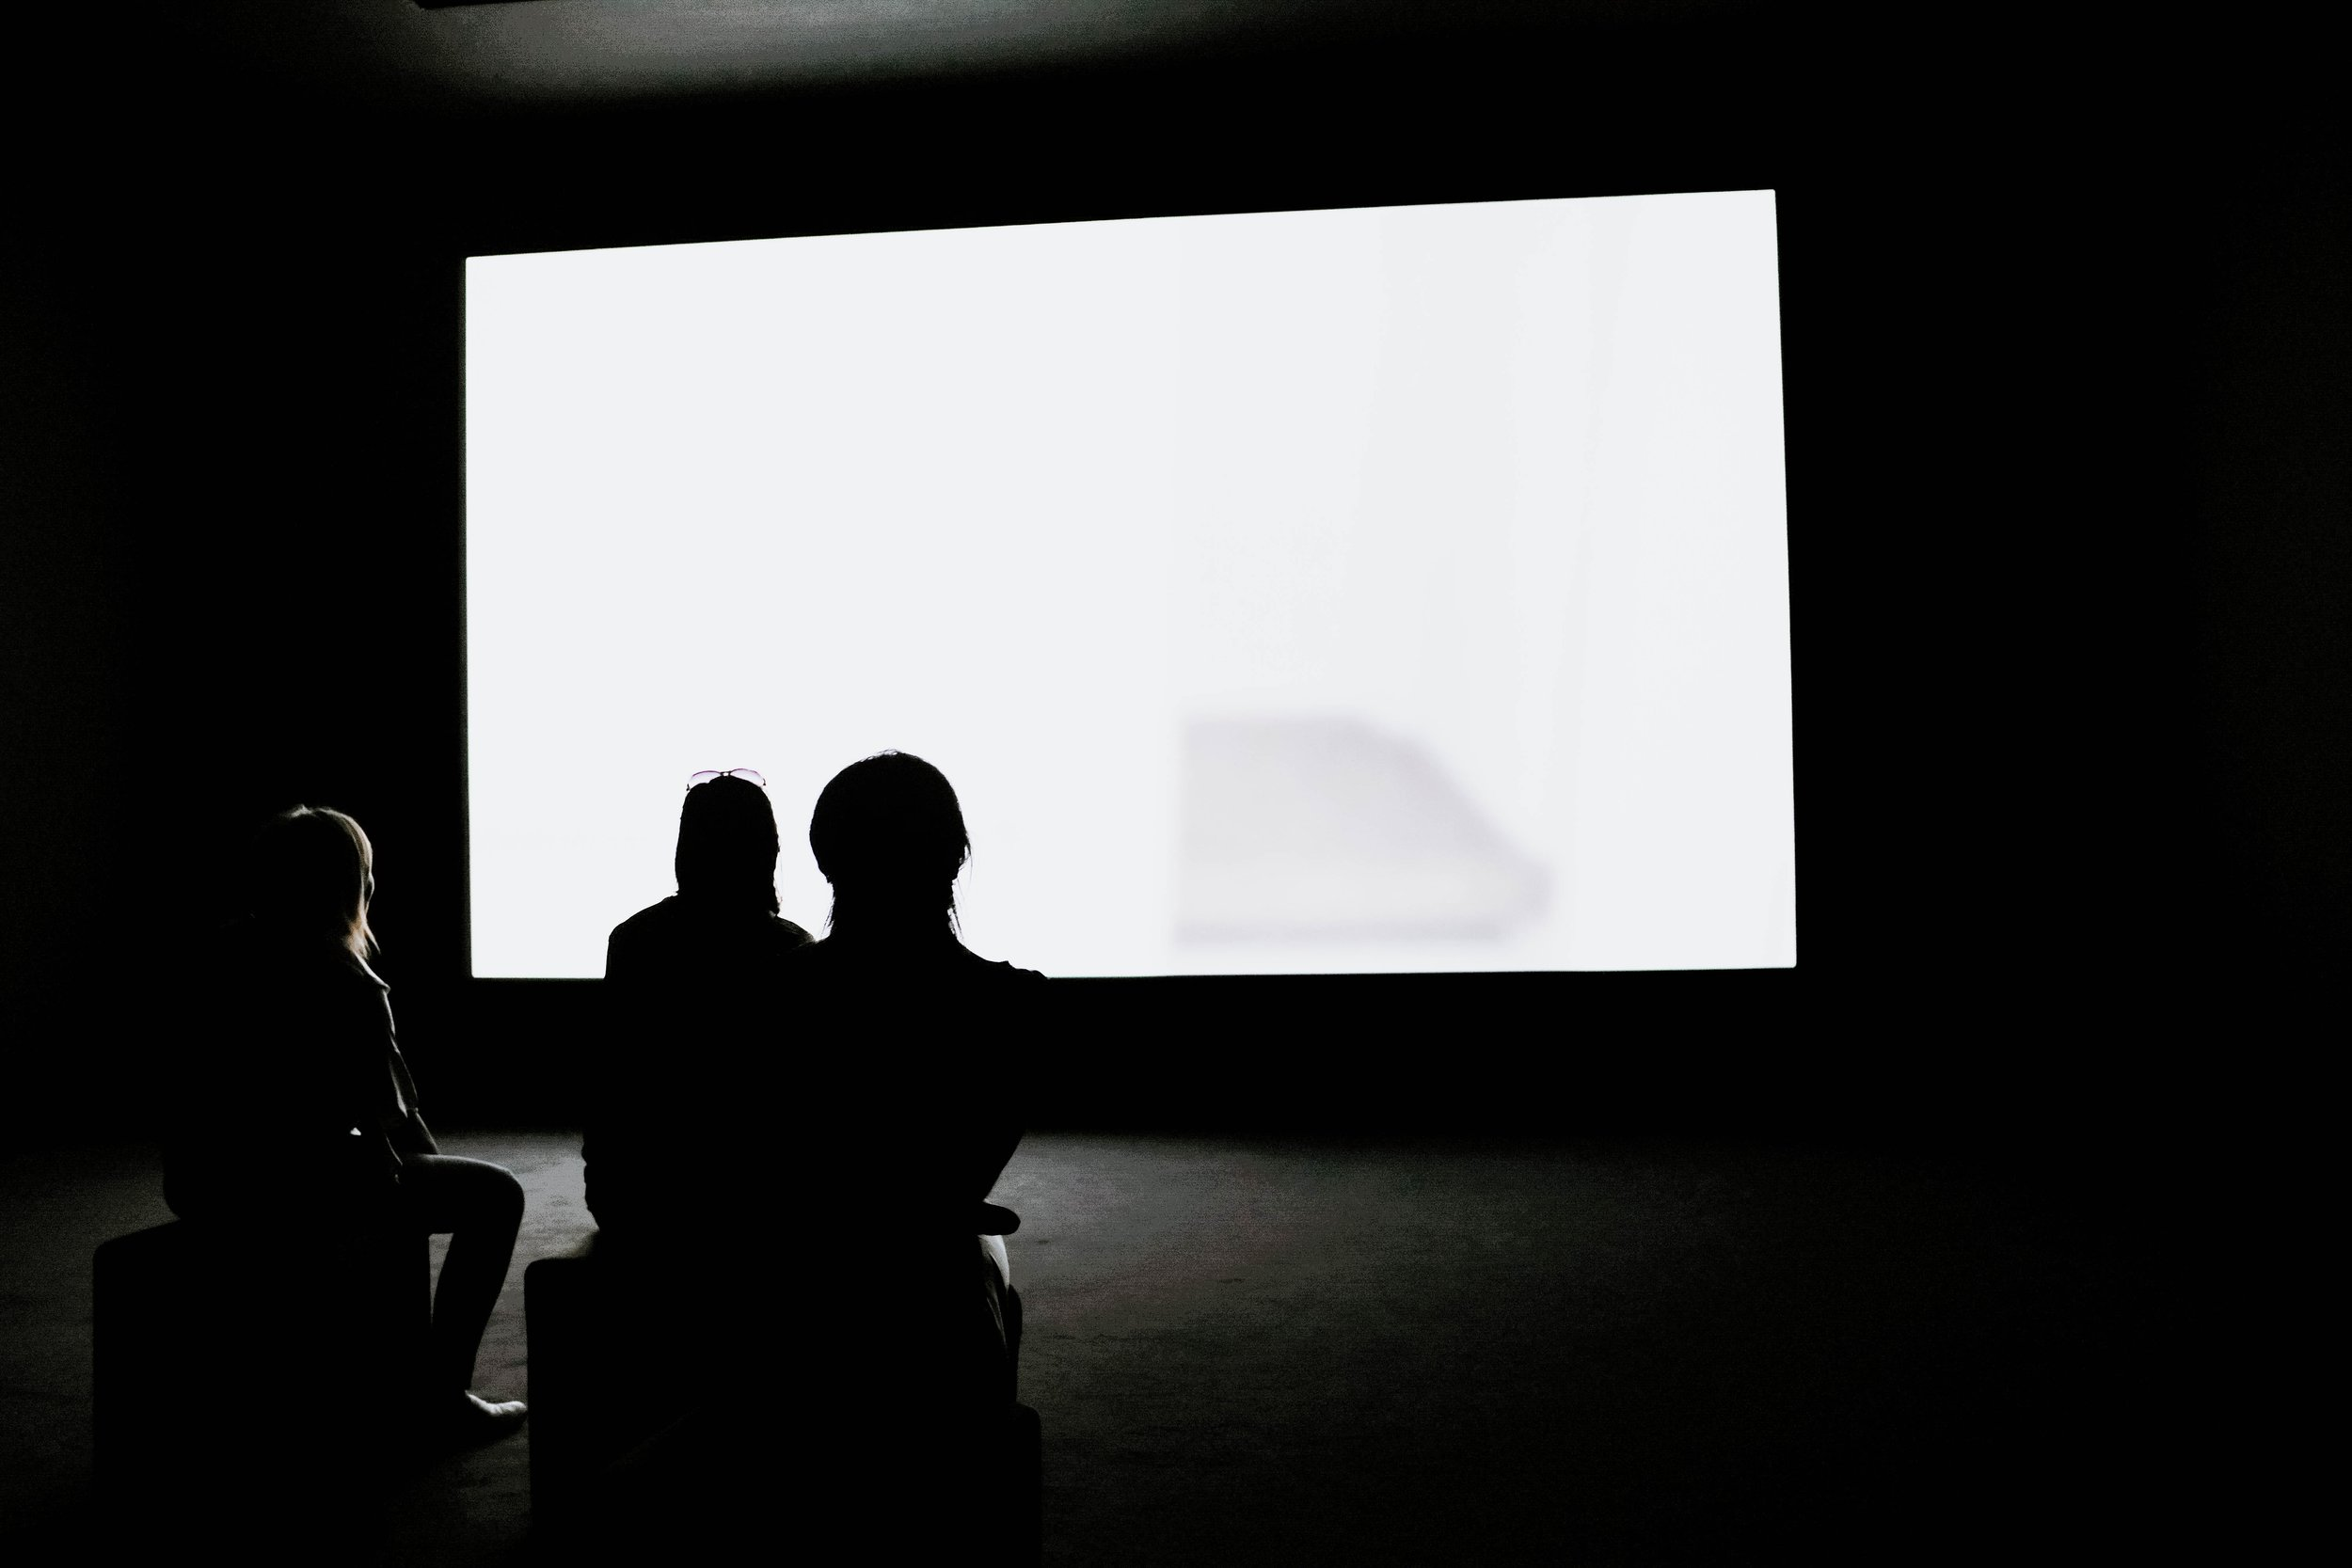 people looking at projection screen, parent with kids, black and white photo